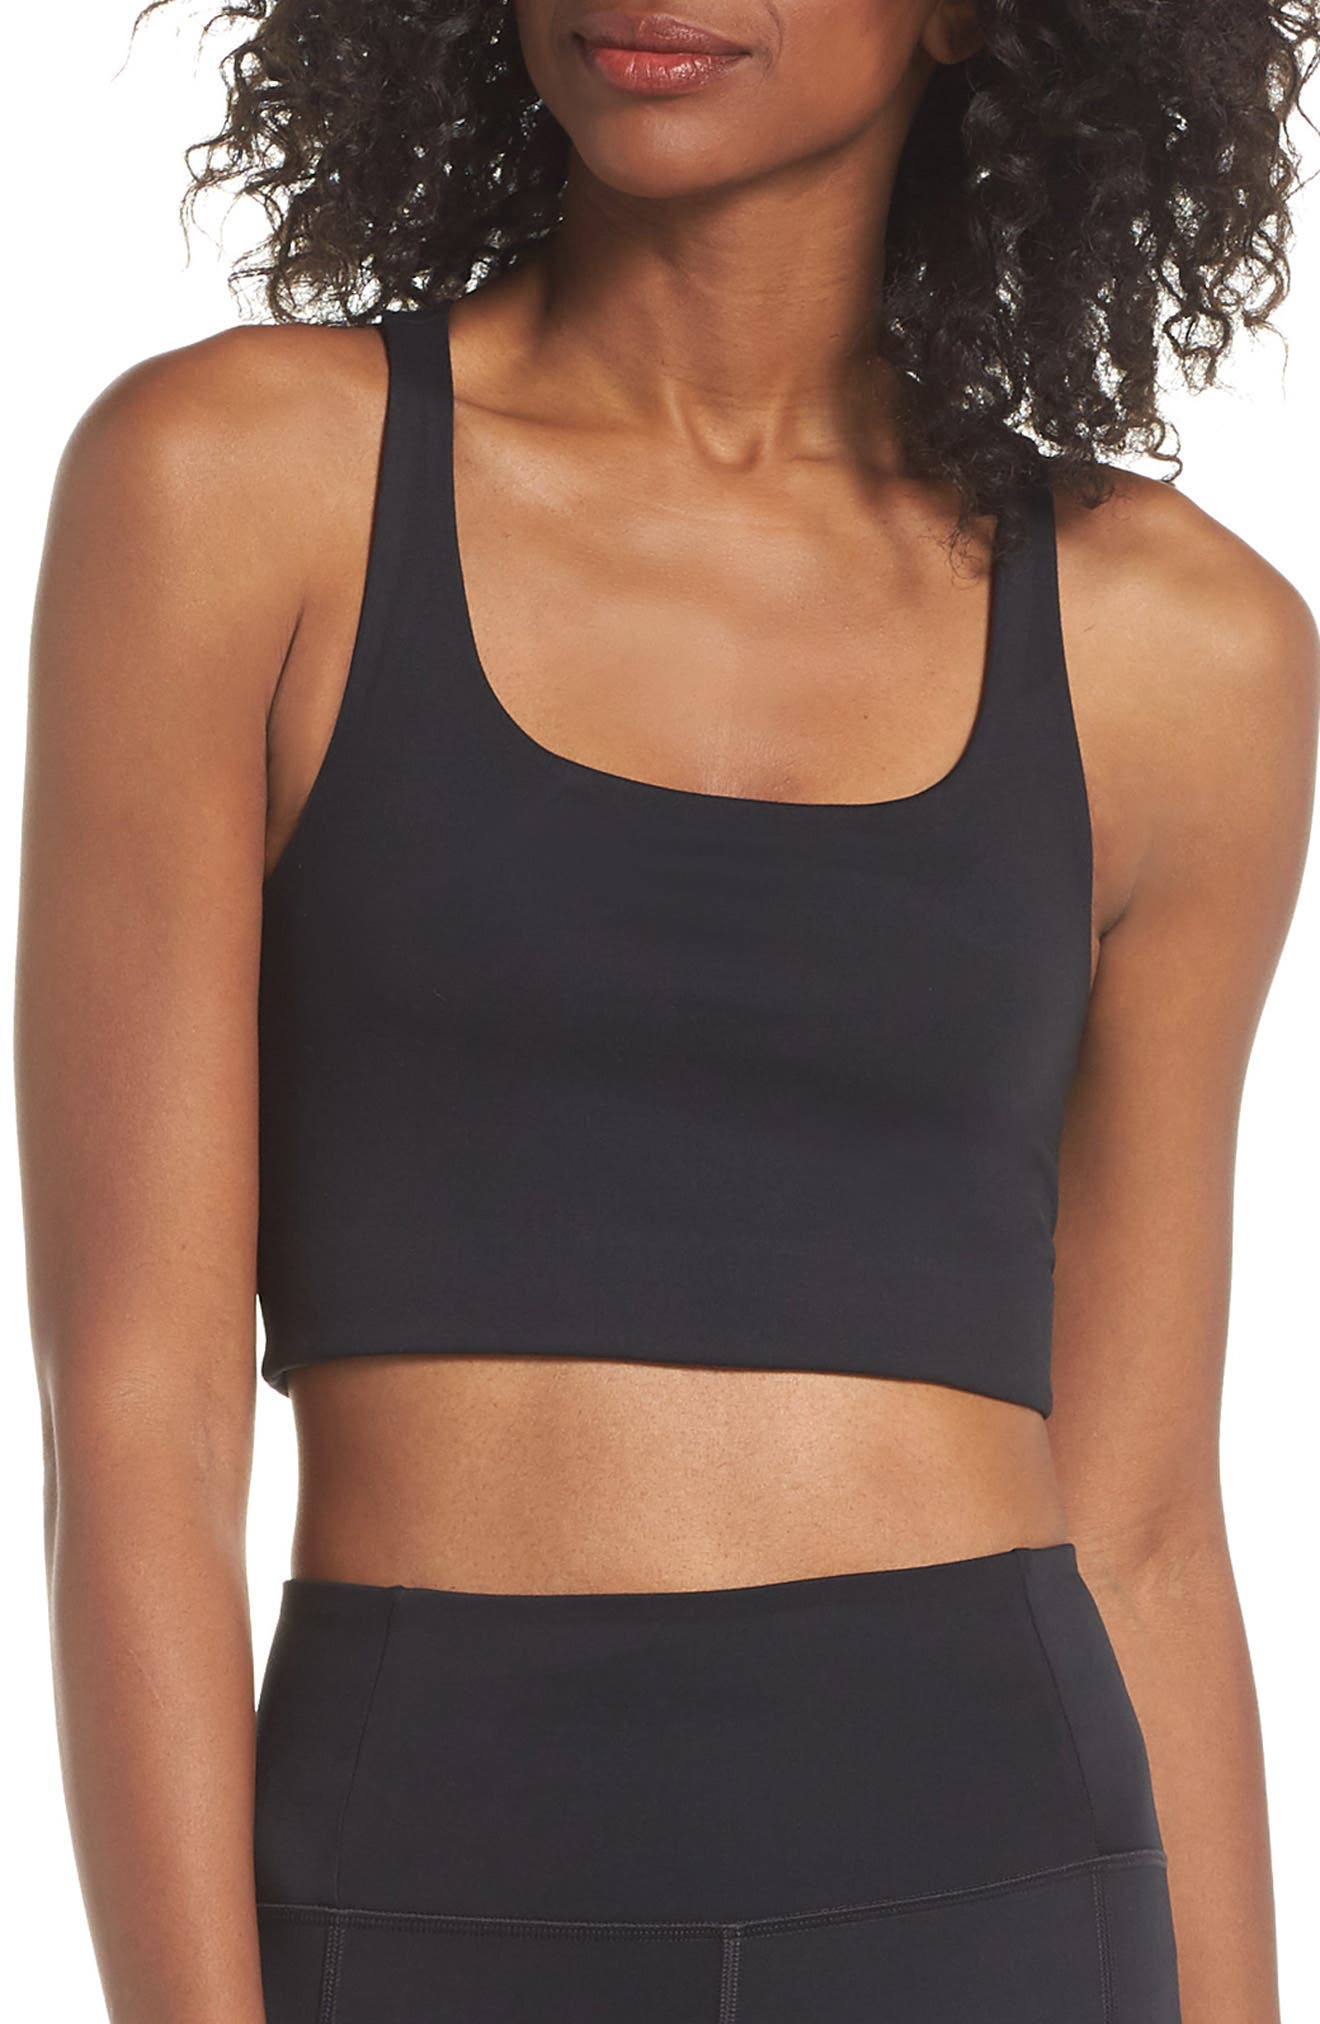 Girlfriend Collective Paloma Sports Bra, Black